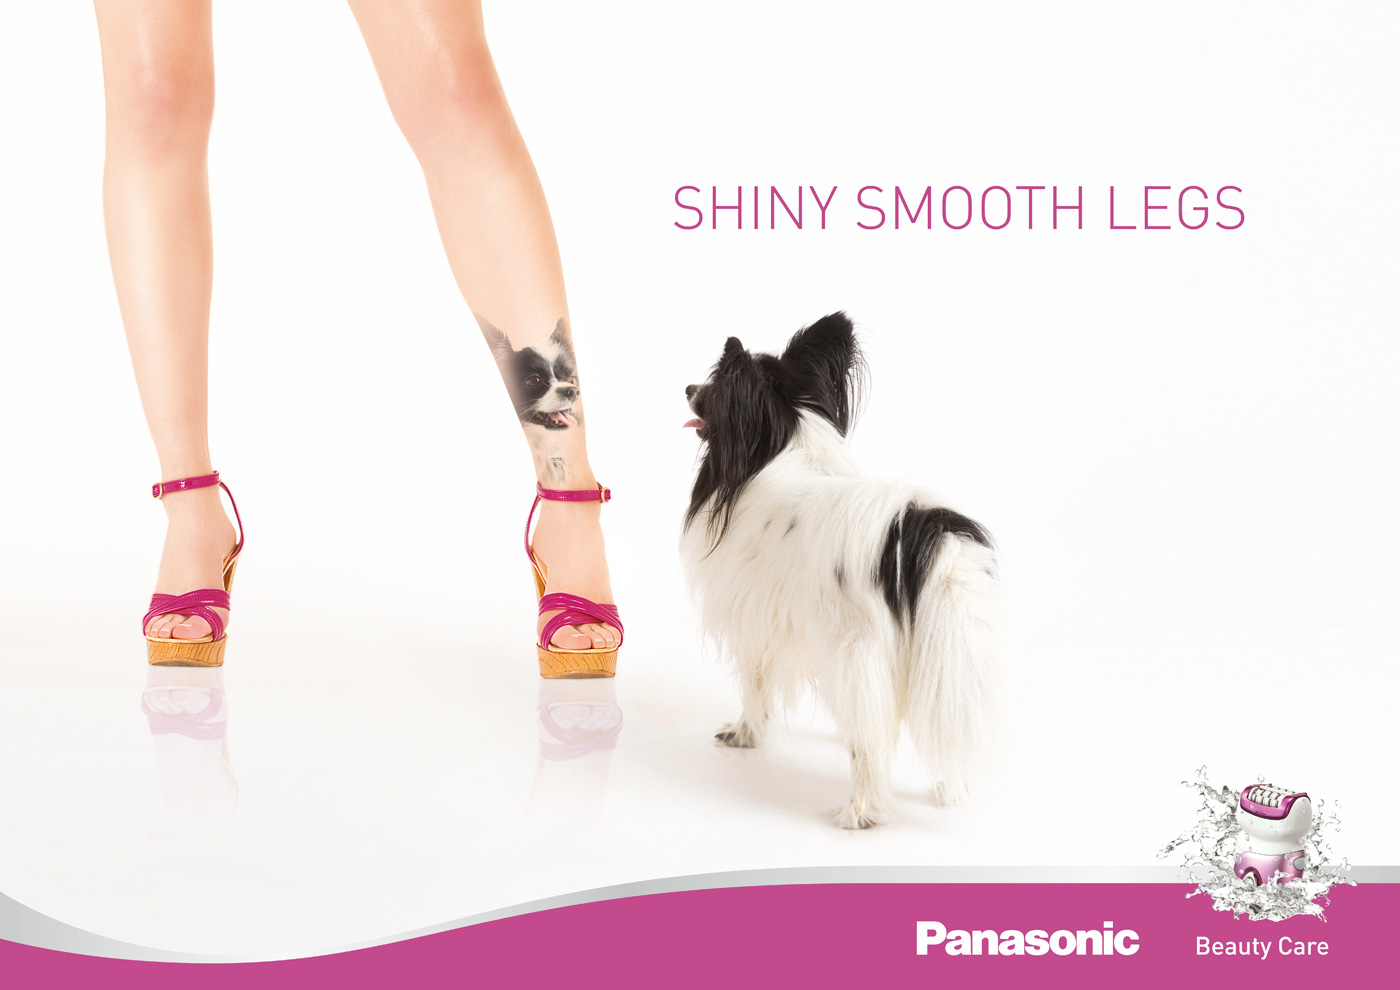 panasonic print advert by glow shiny smooth legs ads of the world  panasonic print ad shiny smooth legs